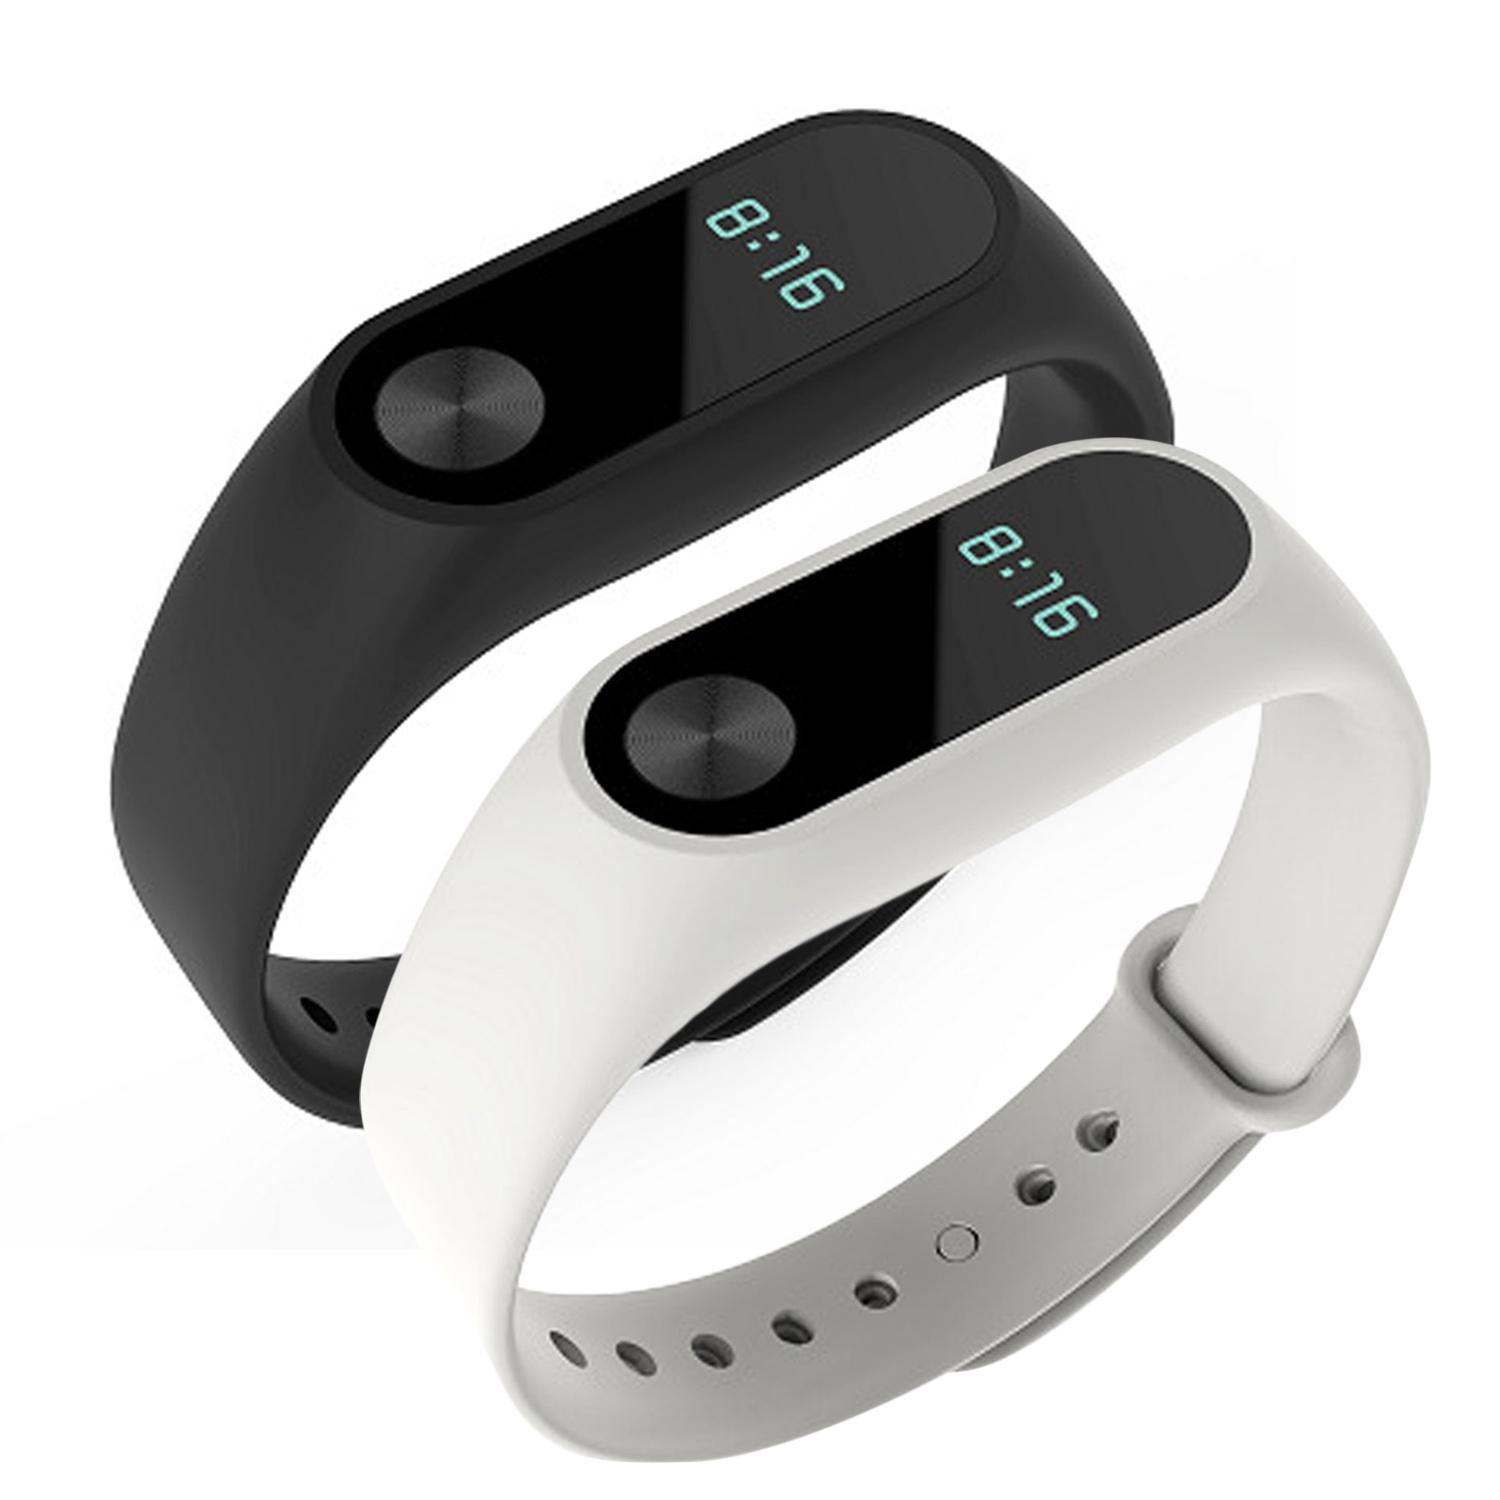 Wrist Watchband Strap Bracelet For Fitbit Charge 2 Heart